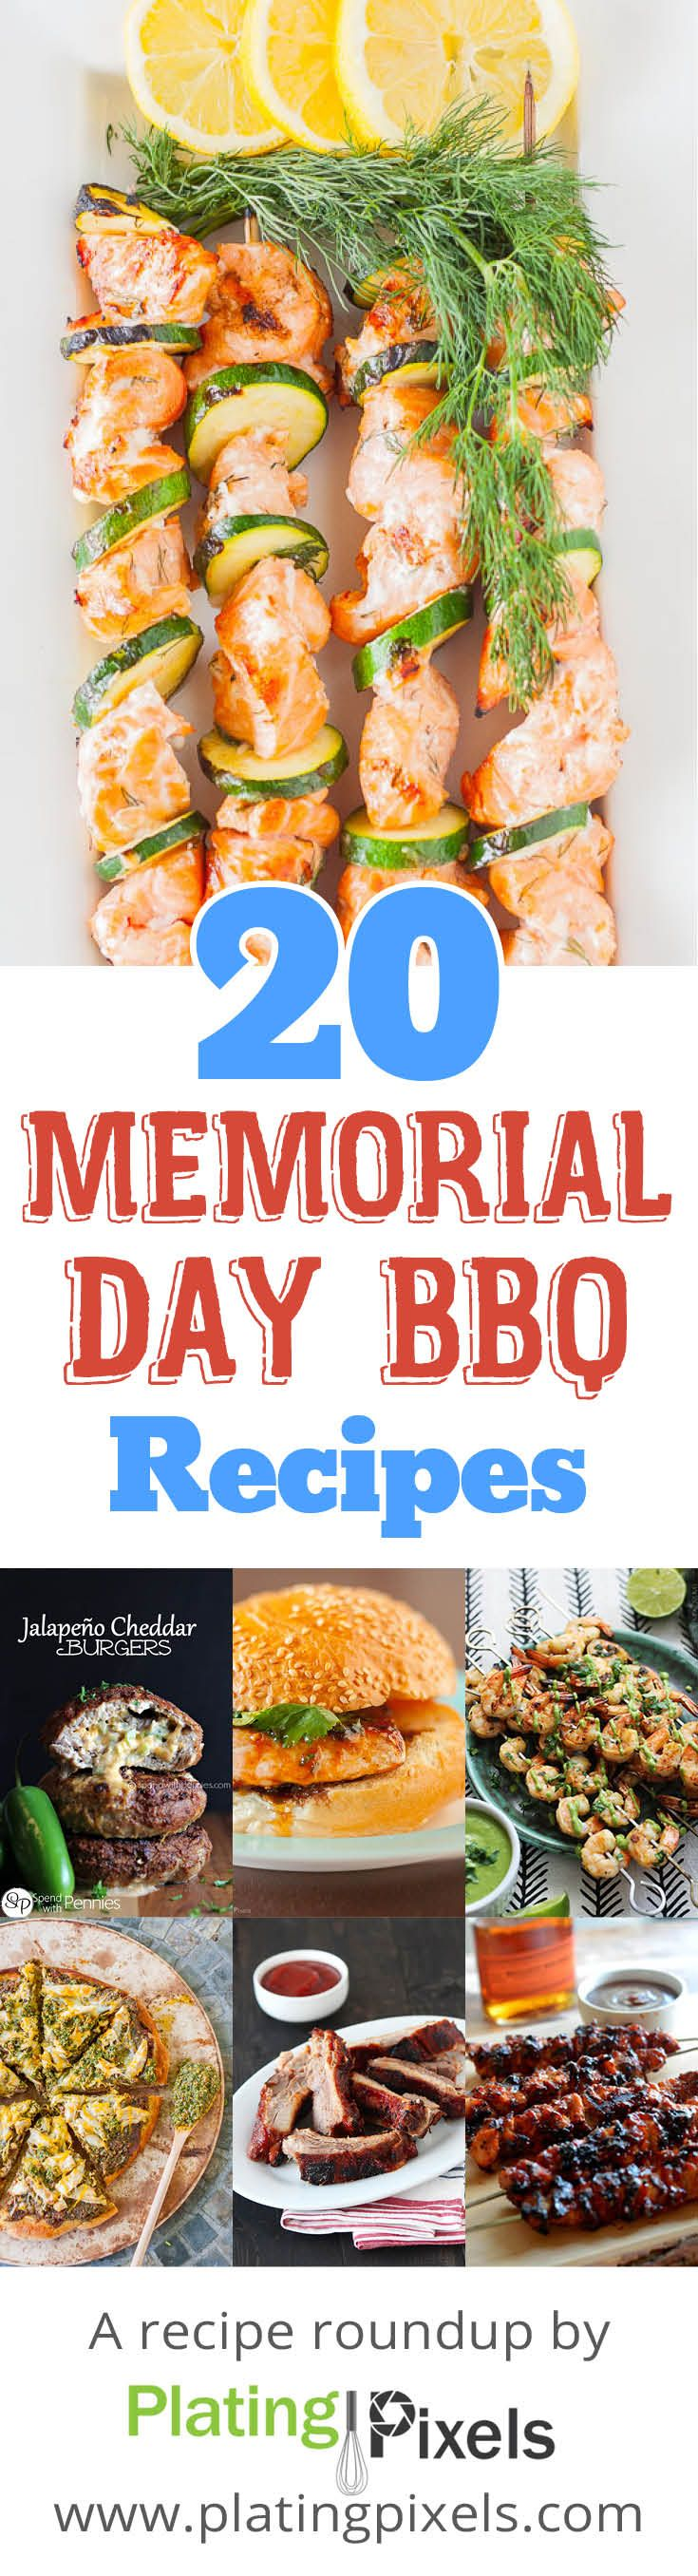 Memorial Day Barbecue recipes roundup by Plating Pixels. Barbecue recipes for your Memorial Day. Chicken, ribs, burgers, shrimp salmon, pizza, salads, sides and mint martini for fun. - www.platingpixels.com